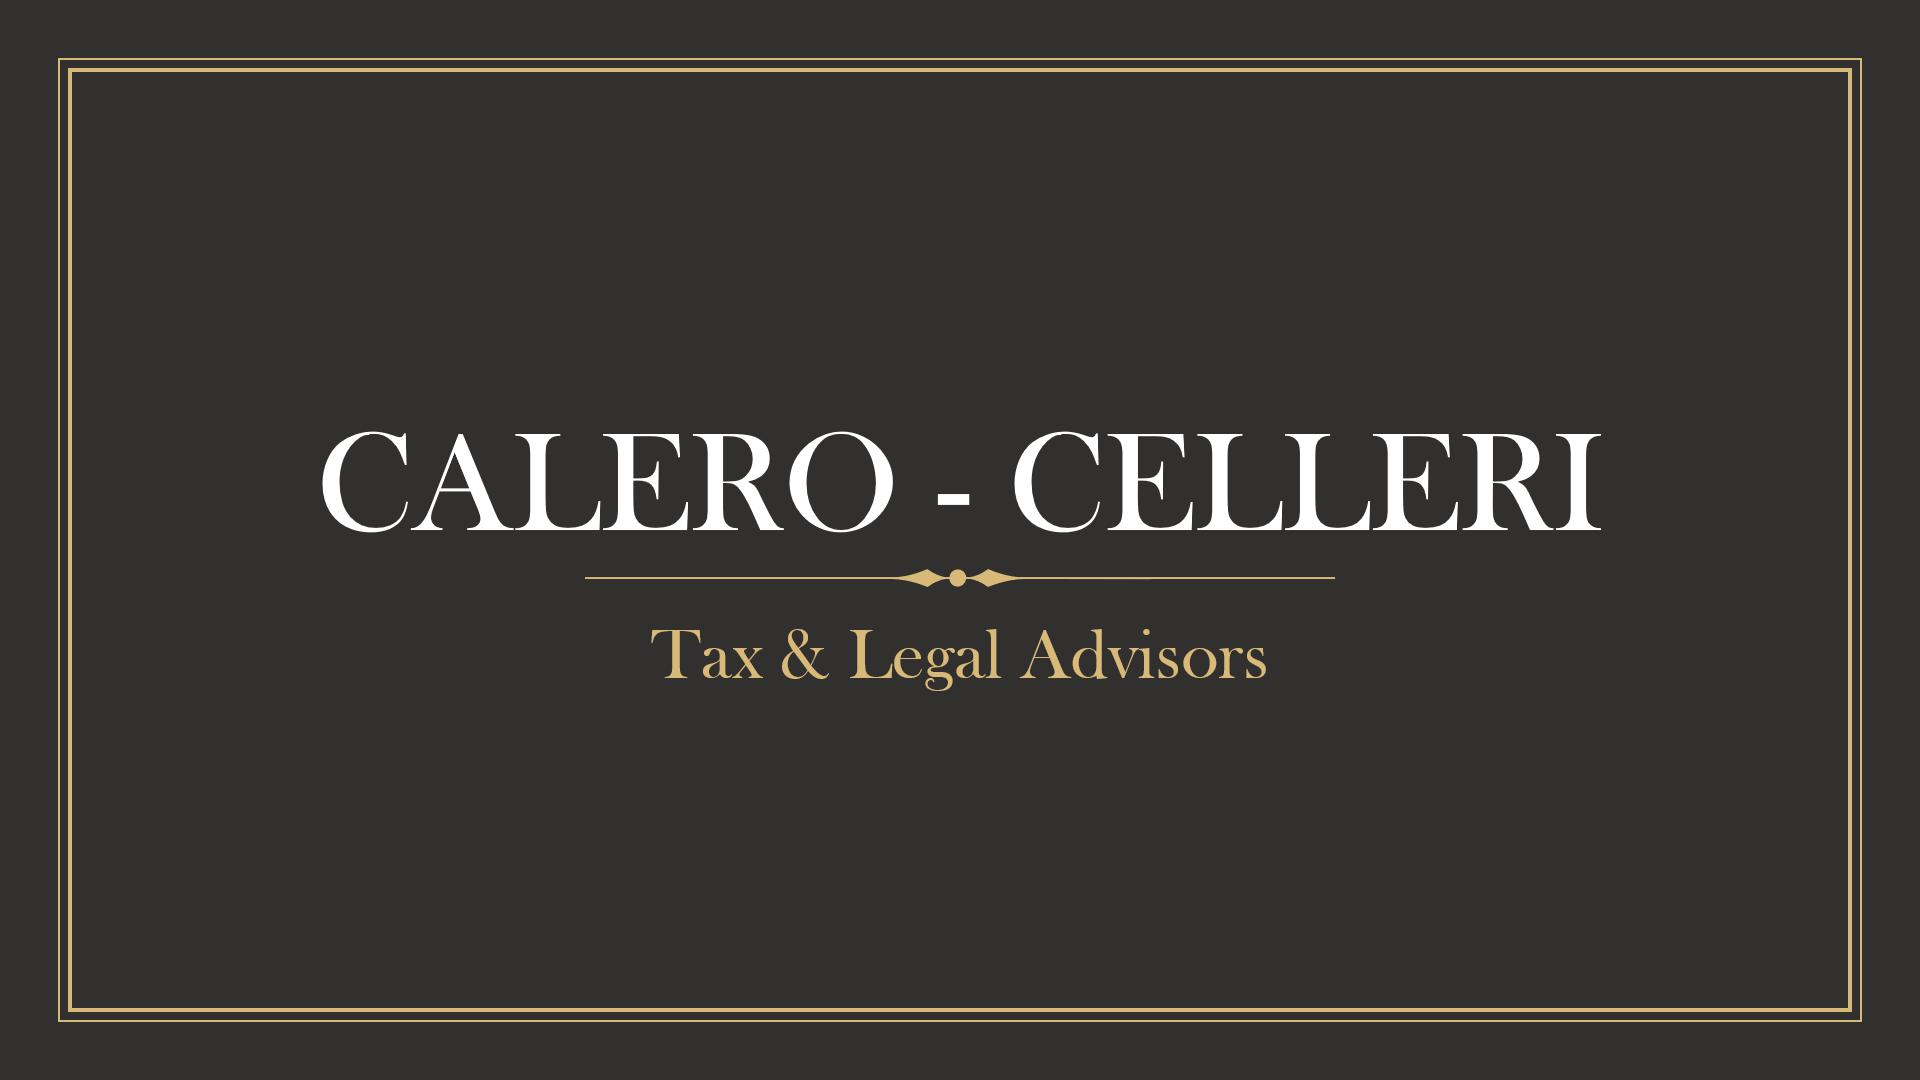 CALERO - CELLERI Tax & Legal Advisors Logo